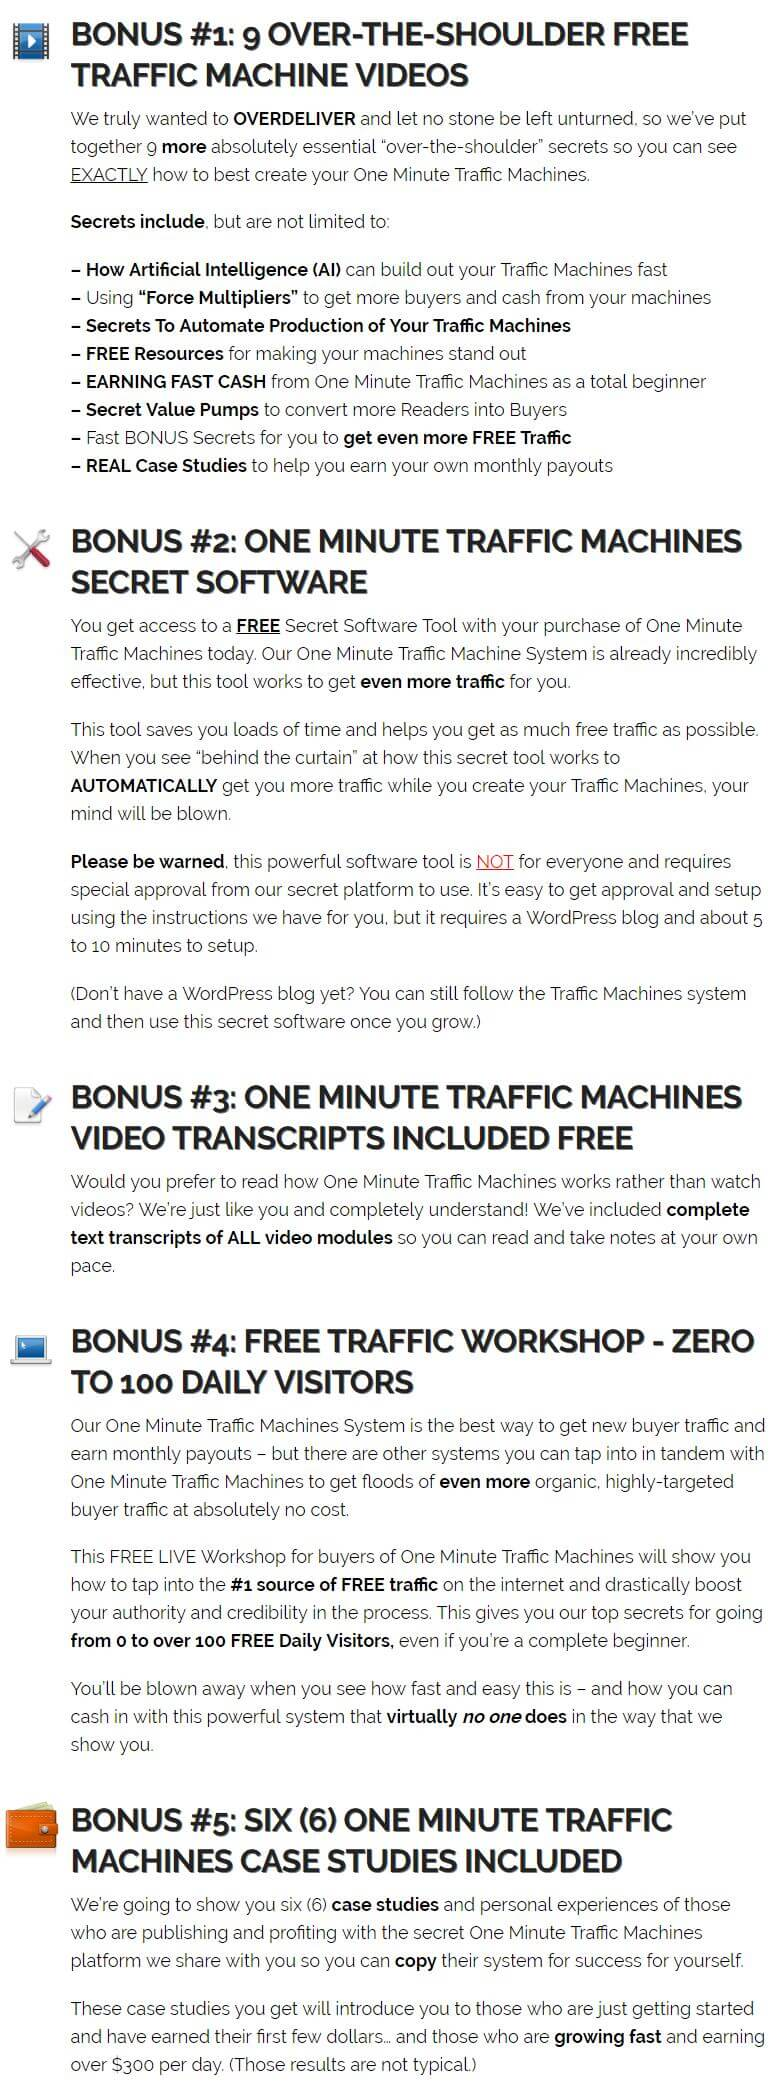 One-Minute-Traffic-Machines-Bonus